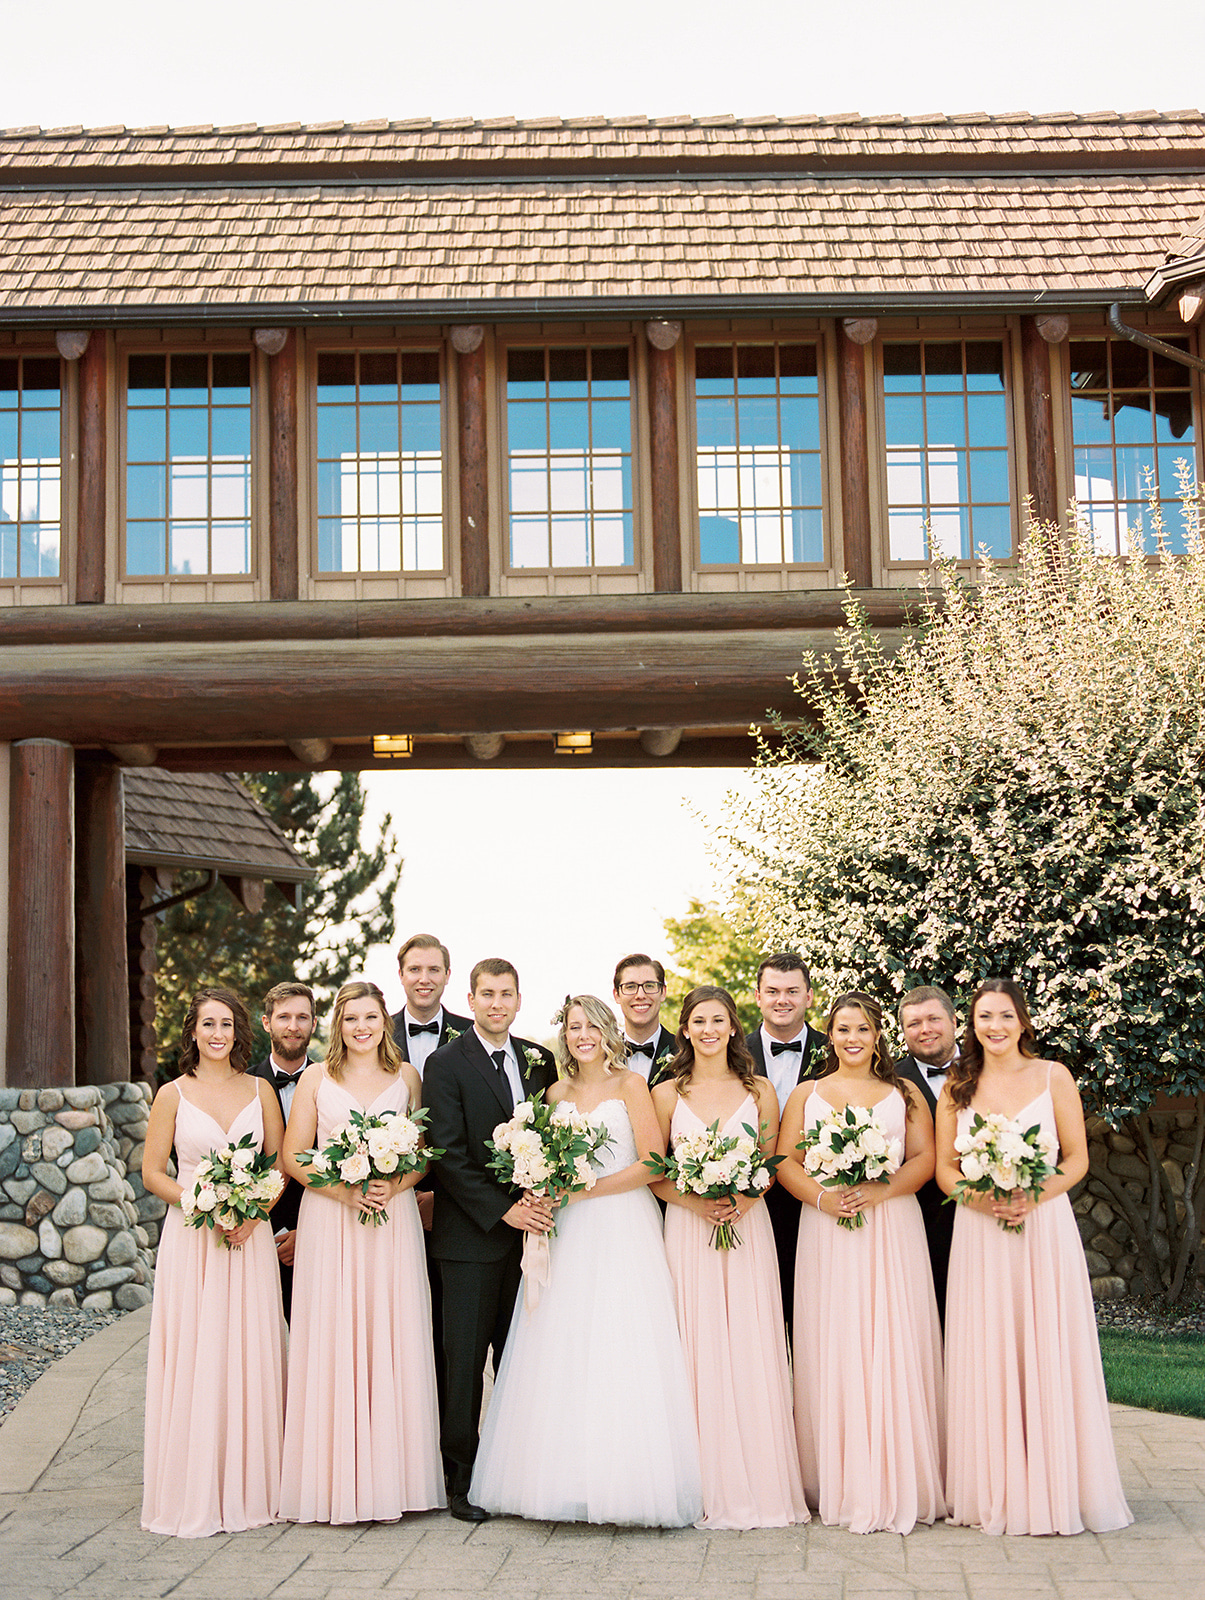 Warm and Sunny Vineyard Estate Wedding in Walla Walla, Washington on Apple Brides